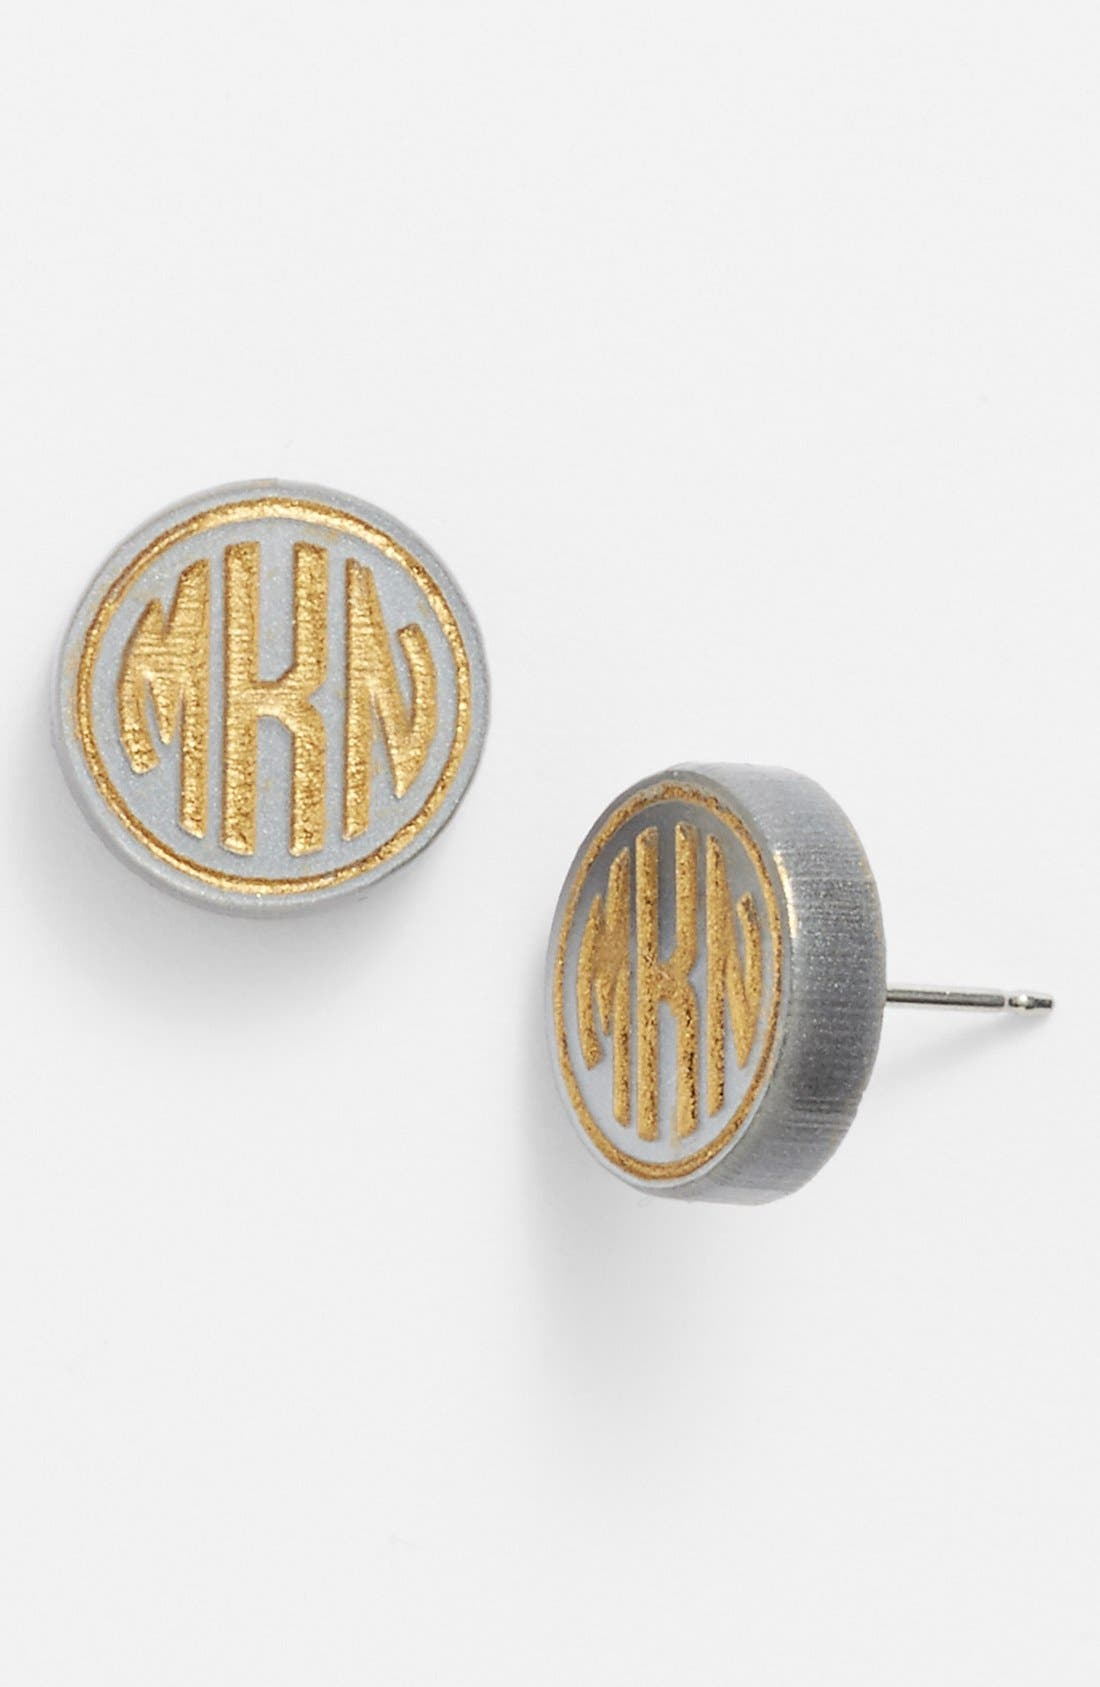 'Chelsea' Small Personalized Monogram Stud Earrings,                             Main thumbnail 1, color,                             GUNMETAL/ GOLD